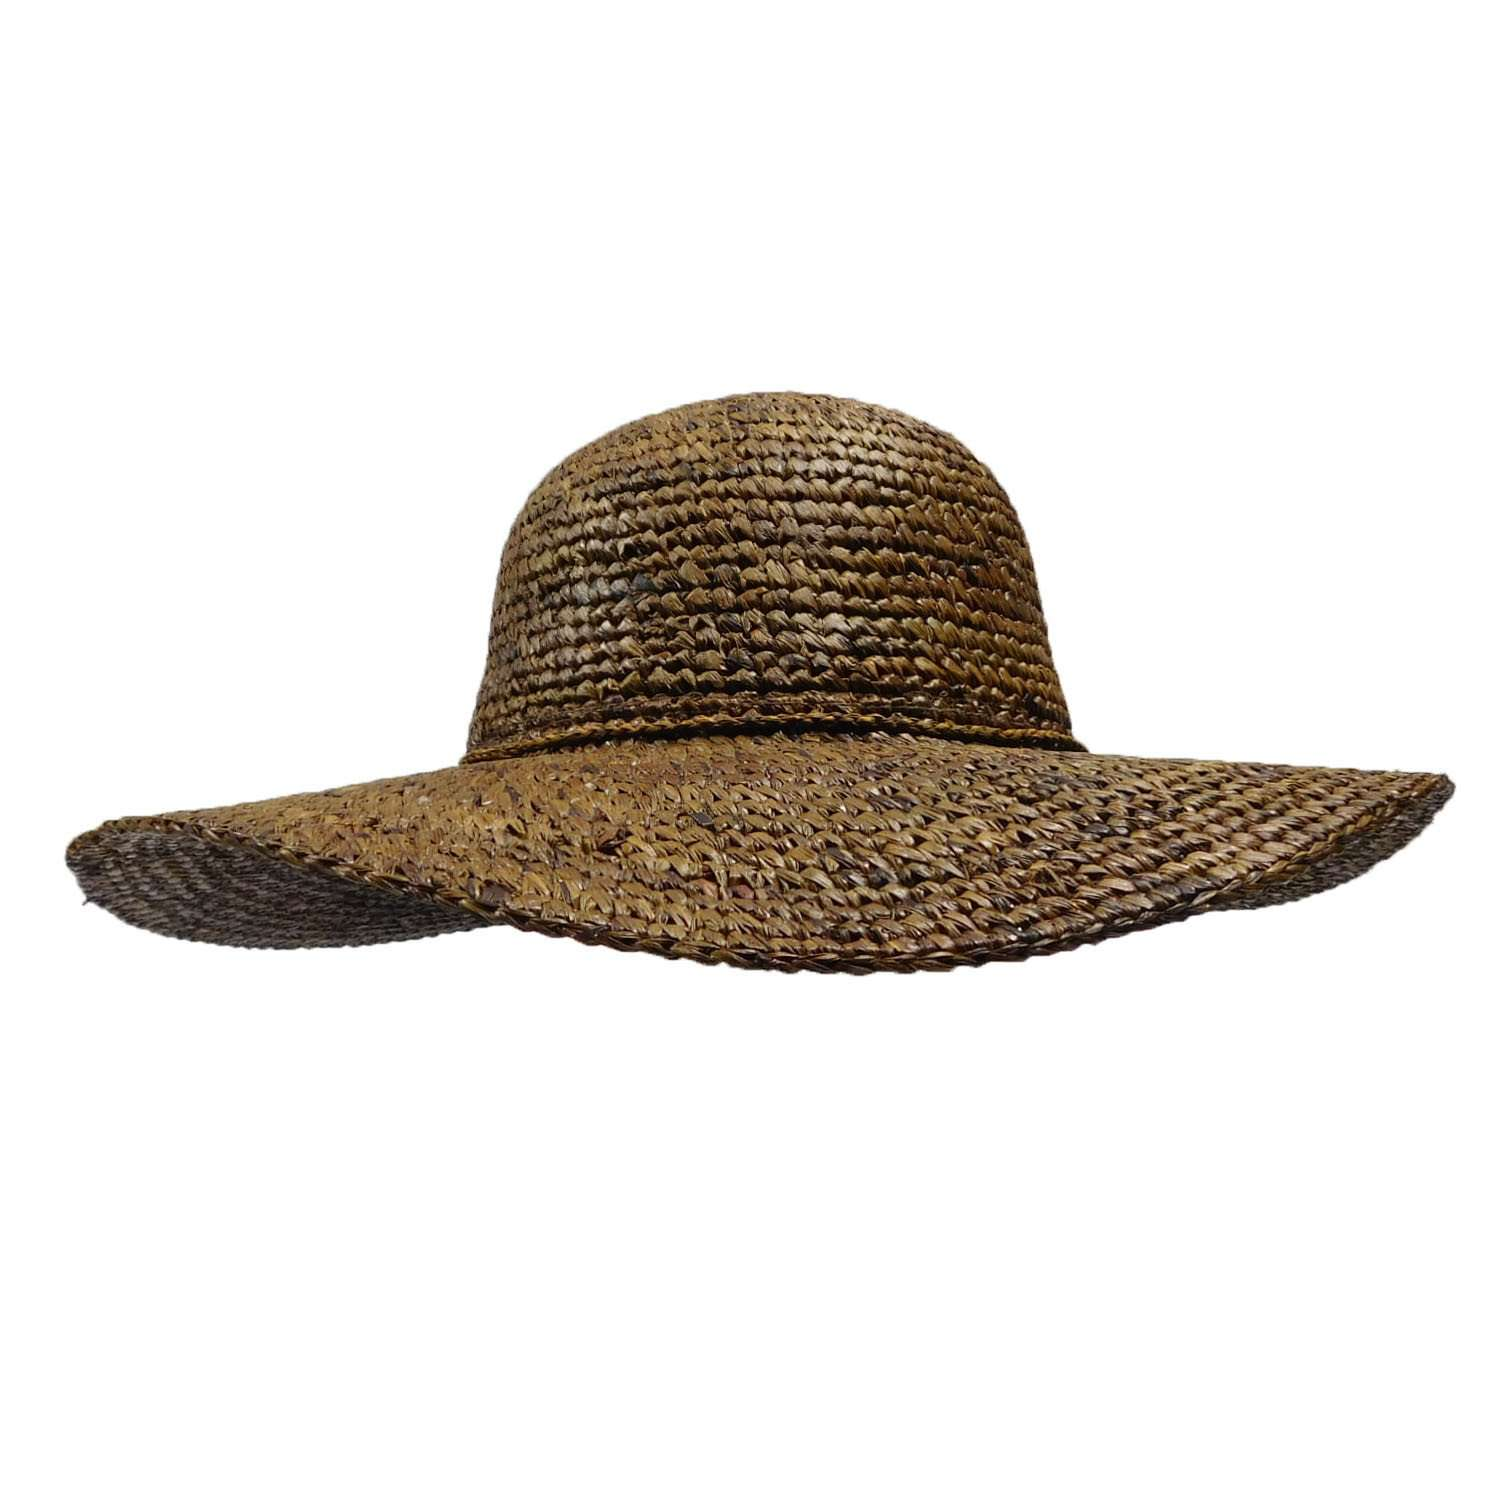 Paris Crochet Raffia Summer Hat by Peter Grimm - Brown - SetarTrading Hats